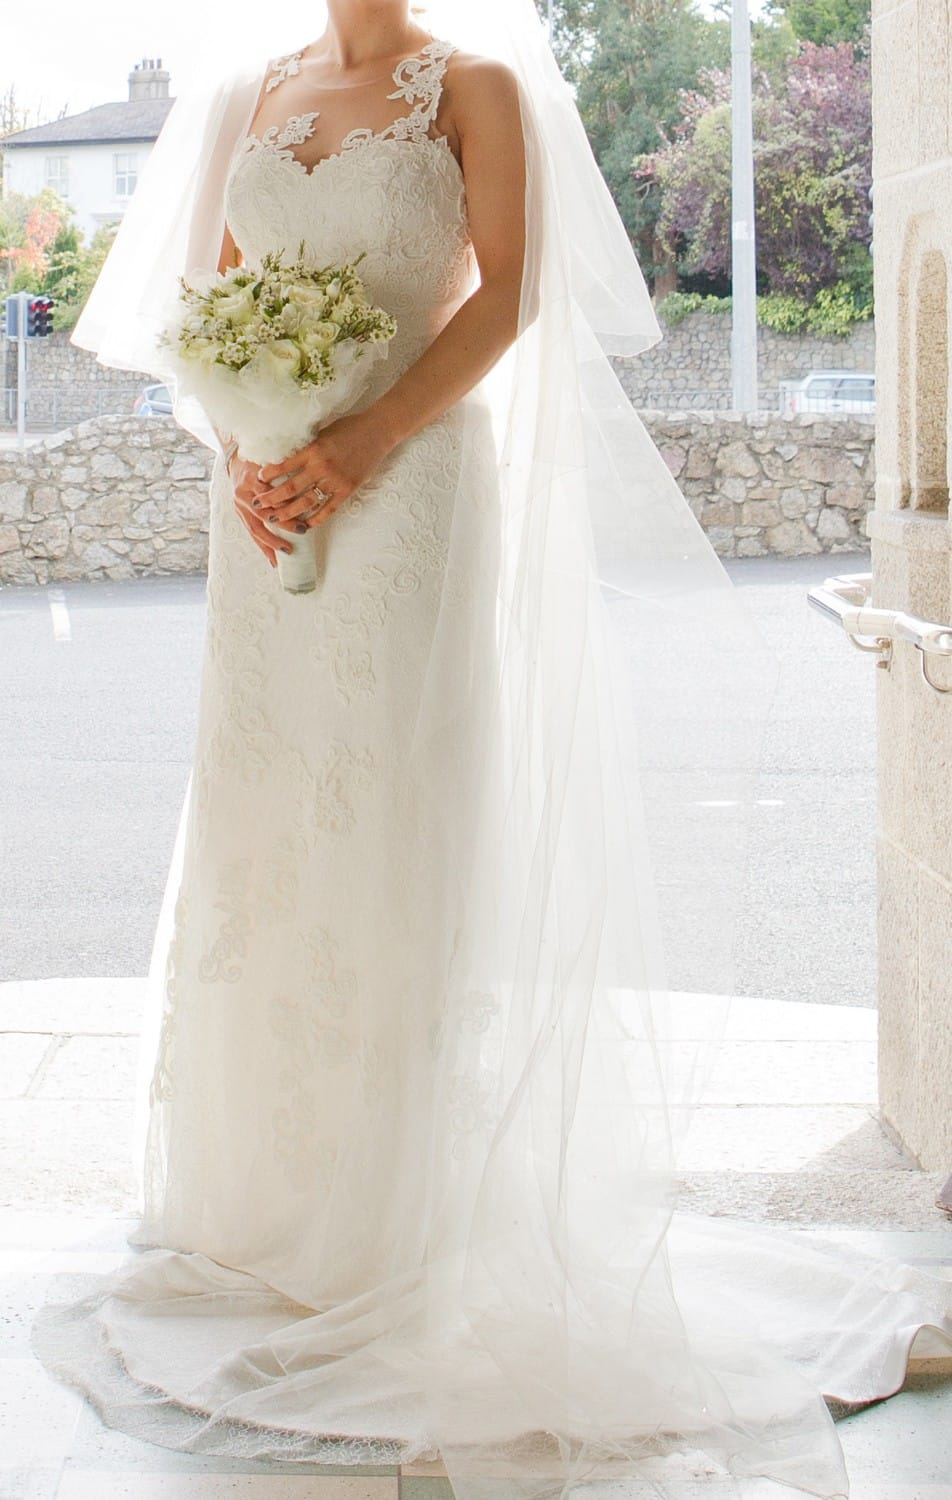 Sacha james d1455 wedding dress sell my wedding dress for Sell wedding dress for free